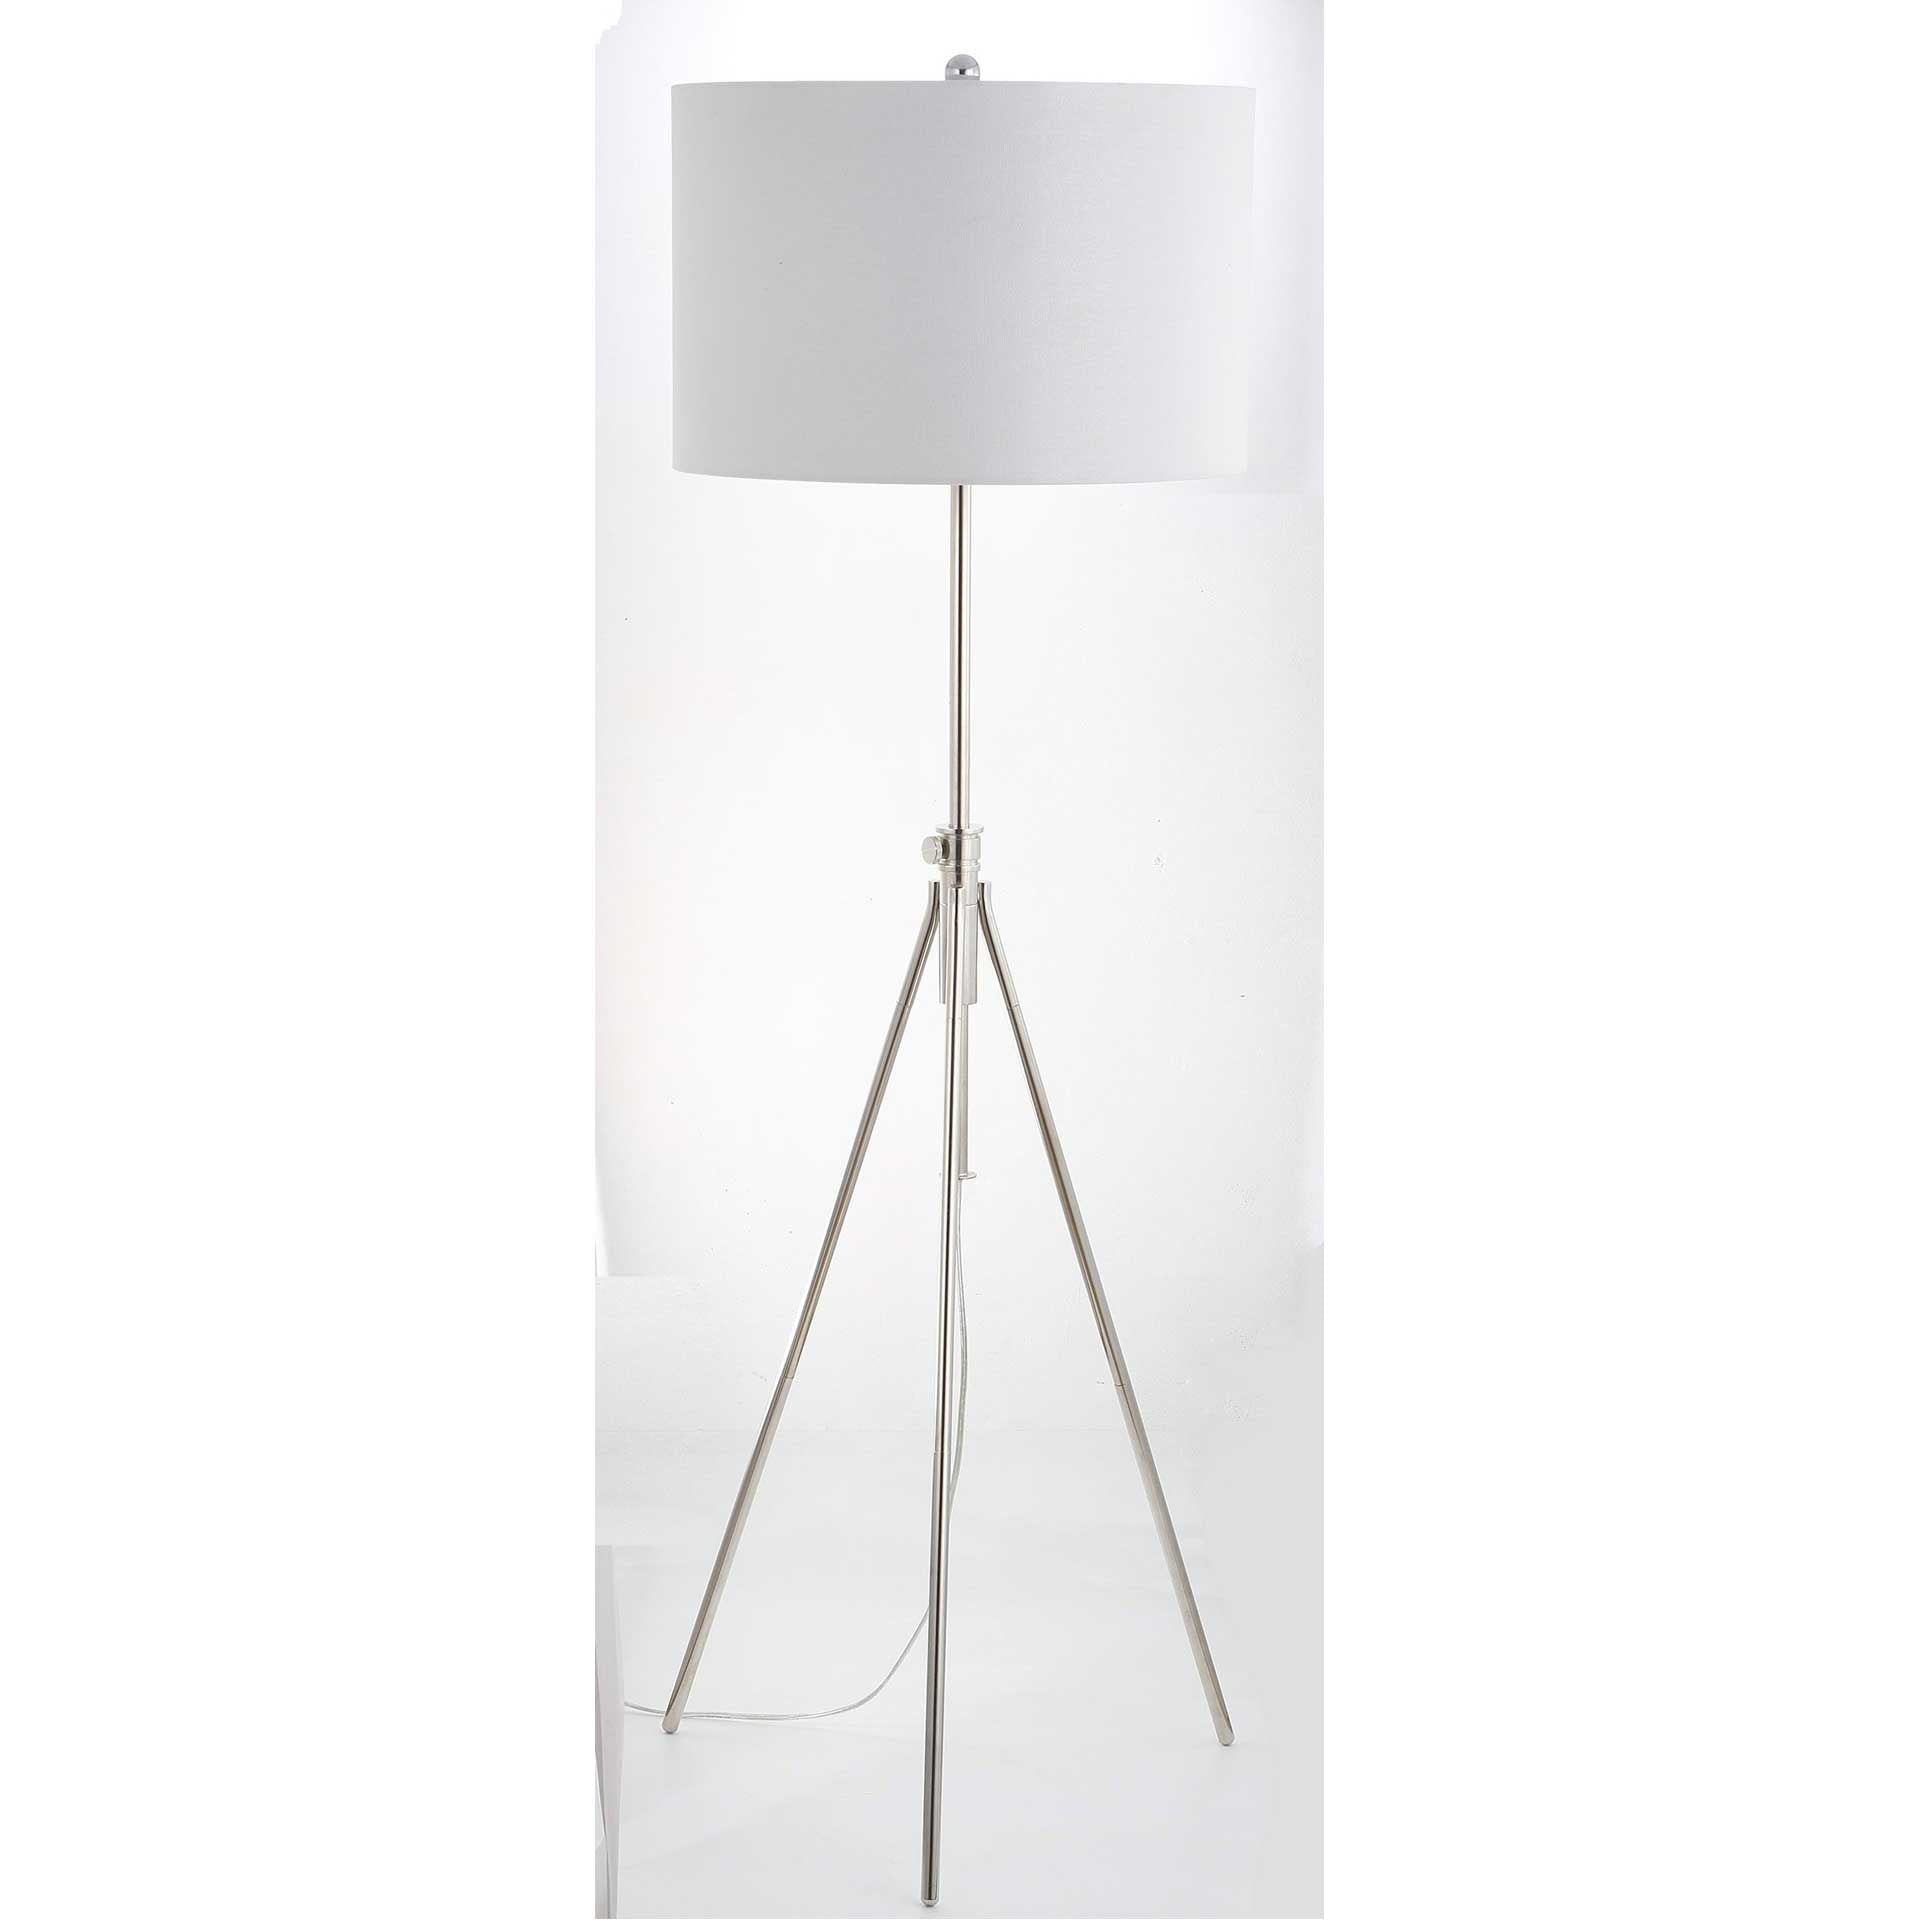 Cillian Floor Lamp Nickel